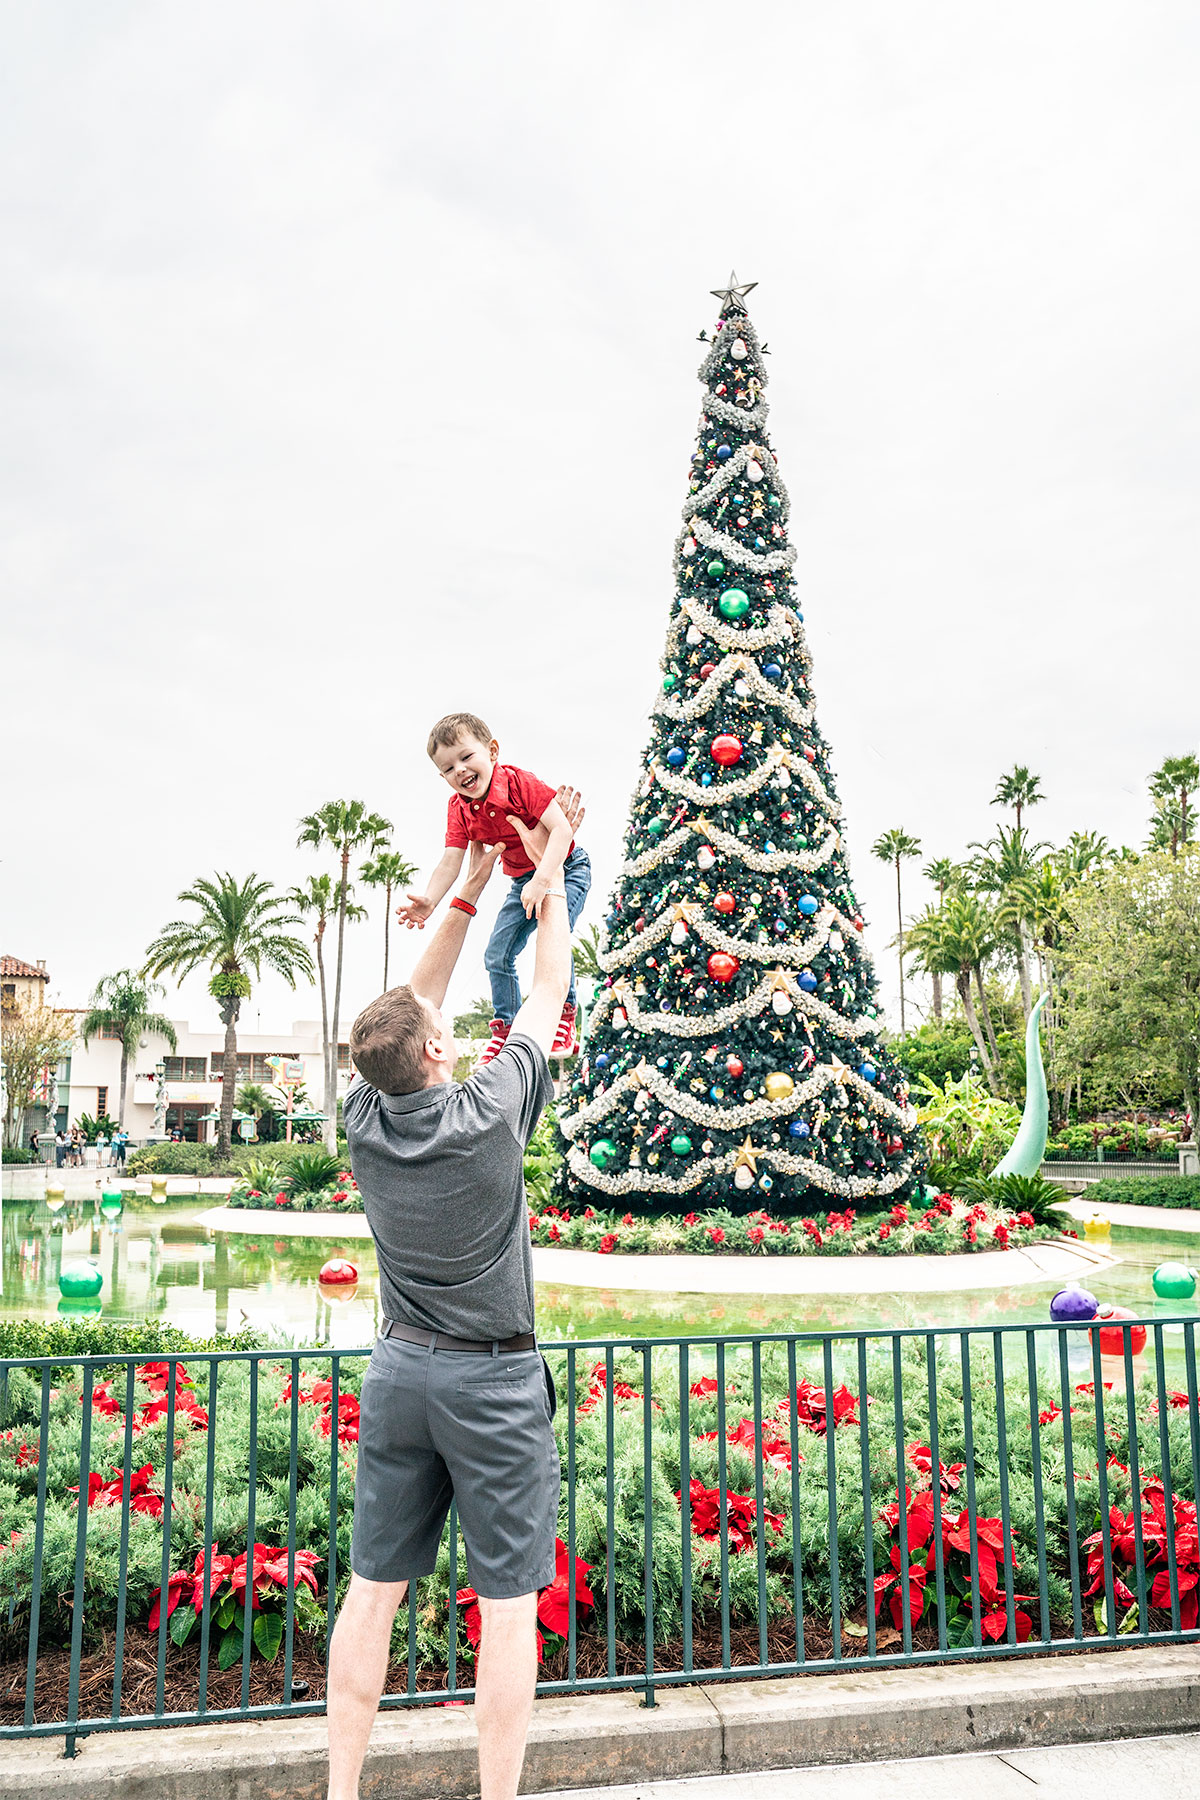 Walt-Disney-World-at-Christmas-Part-III-of-Disney-World-Christmas-Series